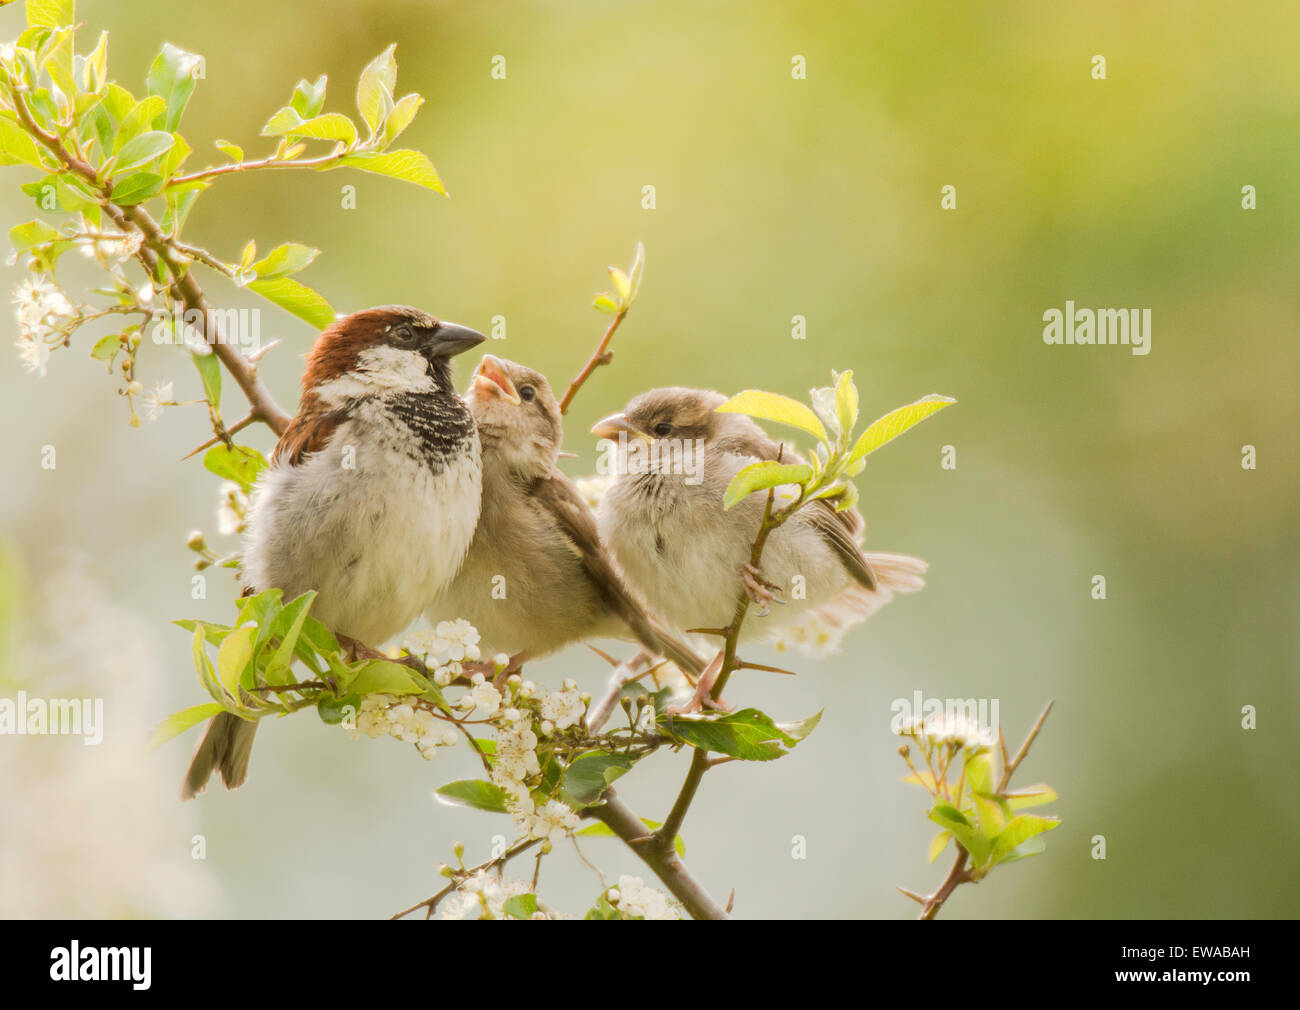 Adult Male House Sparrow with two young, one food begging. - Stock Image